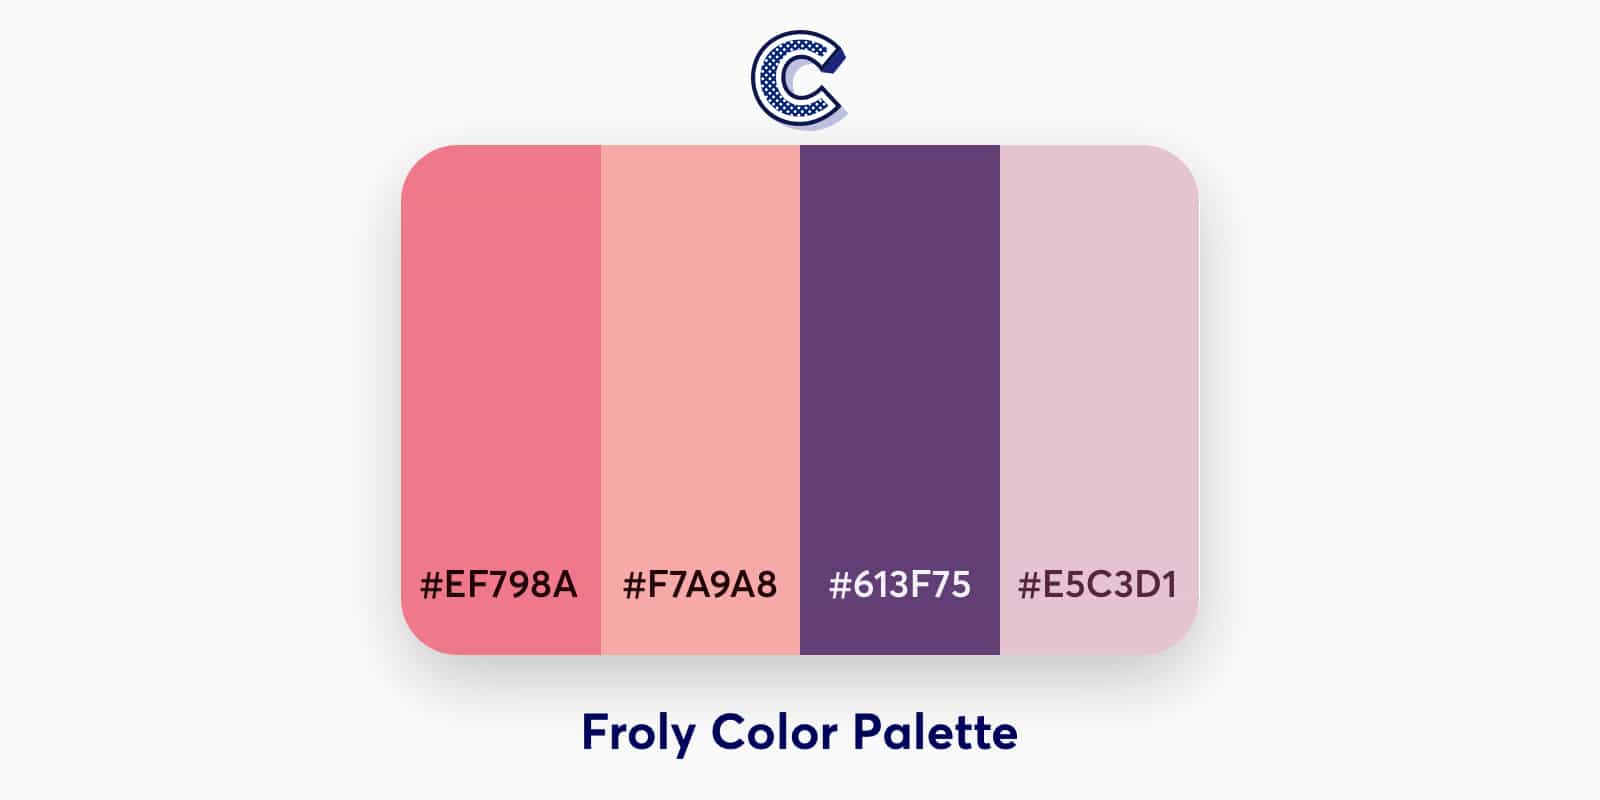 the featured iamge of froly color palette